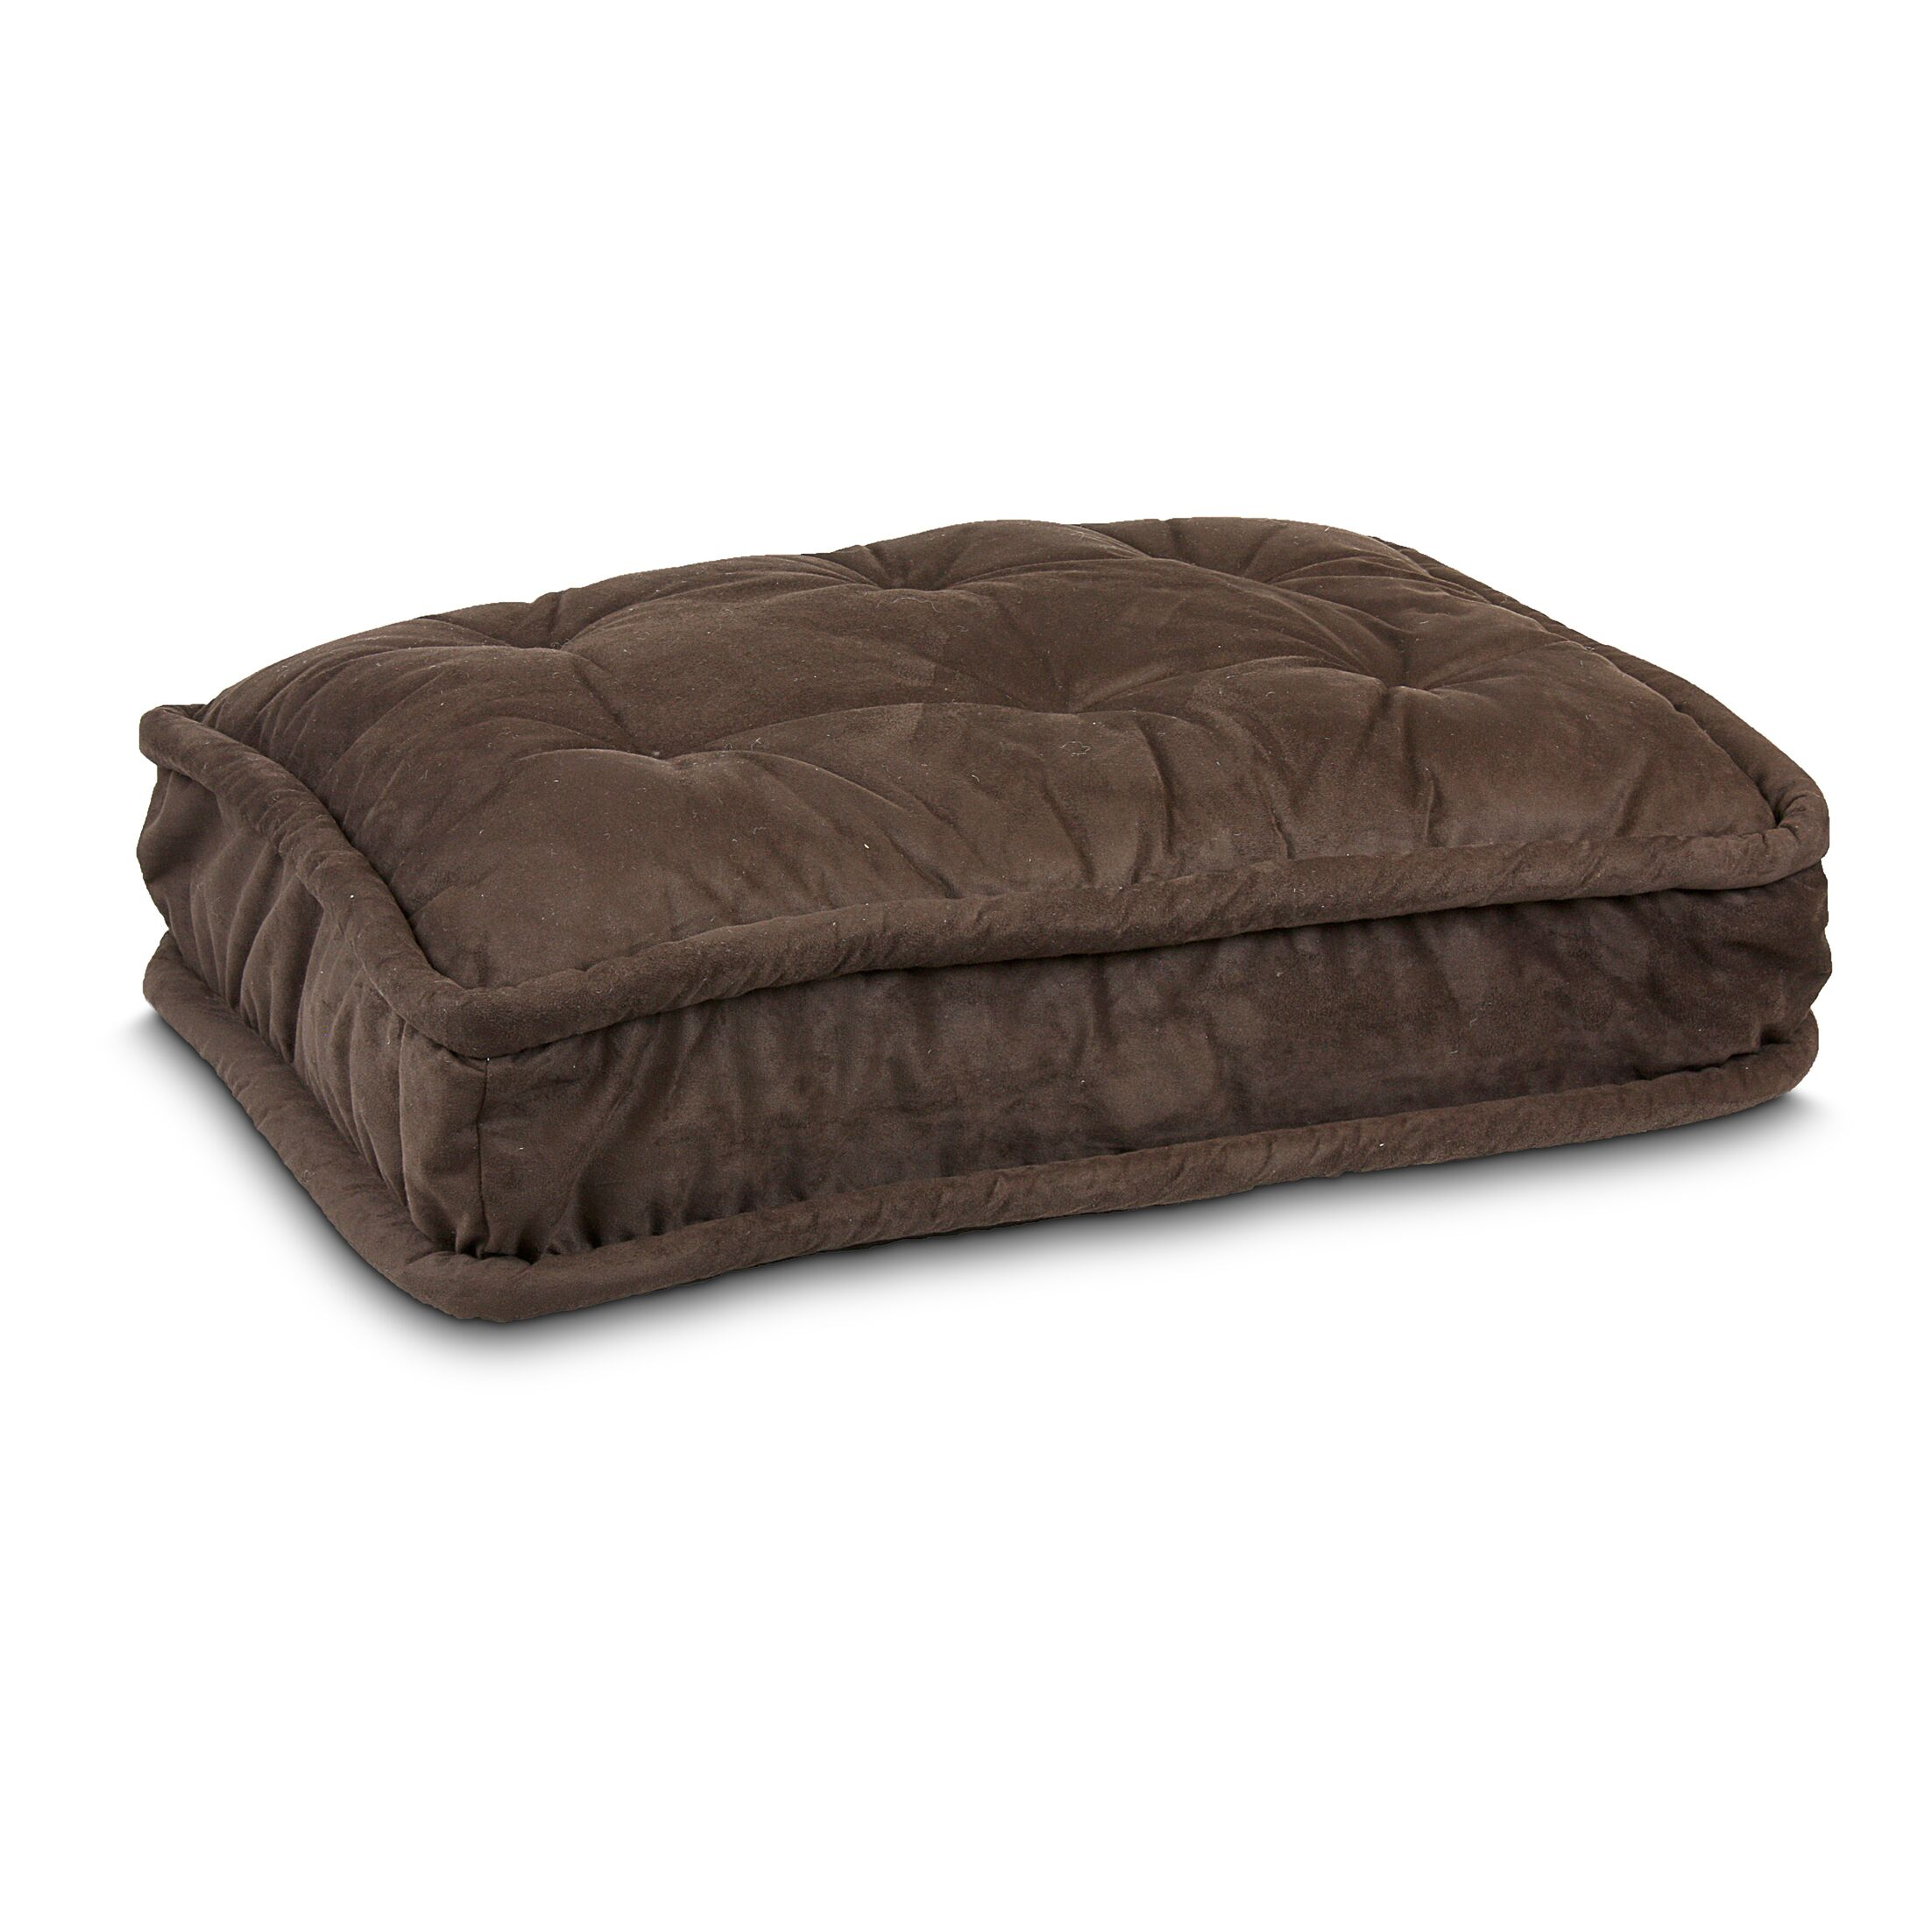 Luxury Pillow Top Pet Bed Color: Hot Fudge, Size: Extra Large - 42